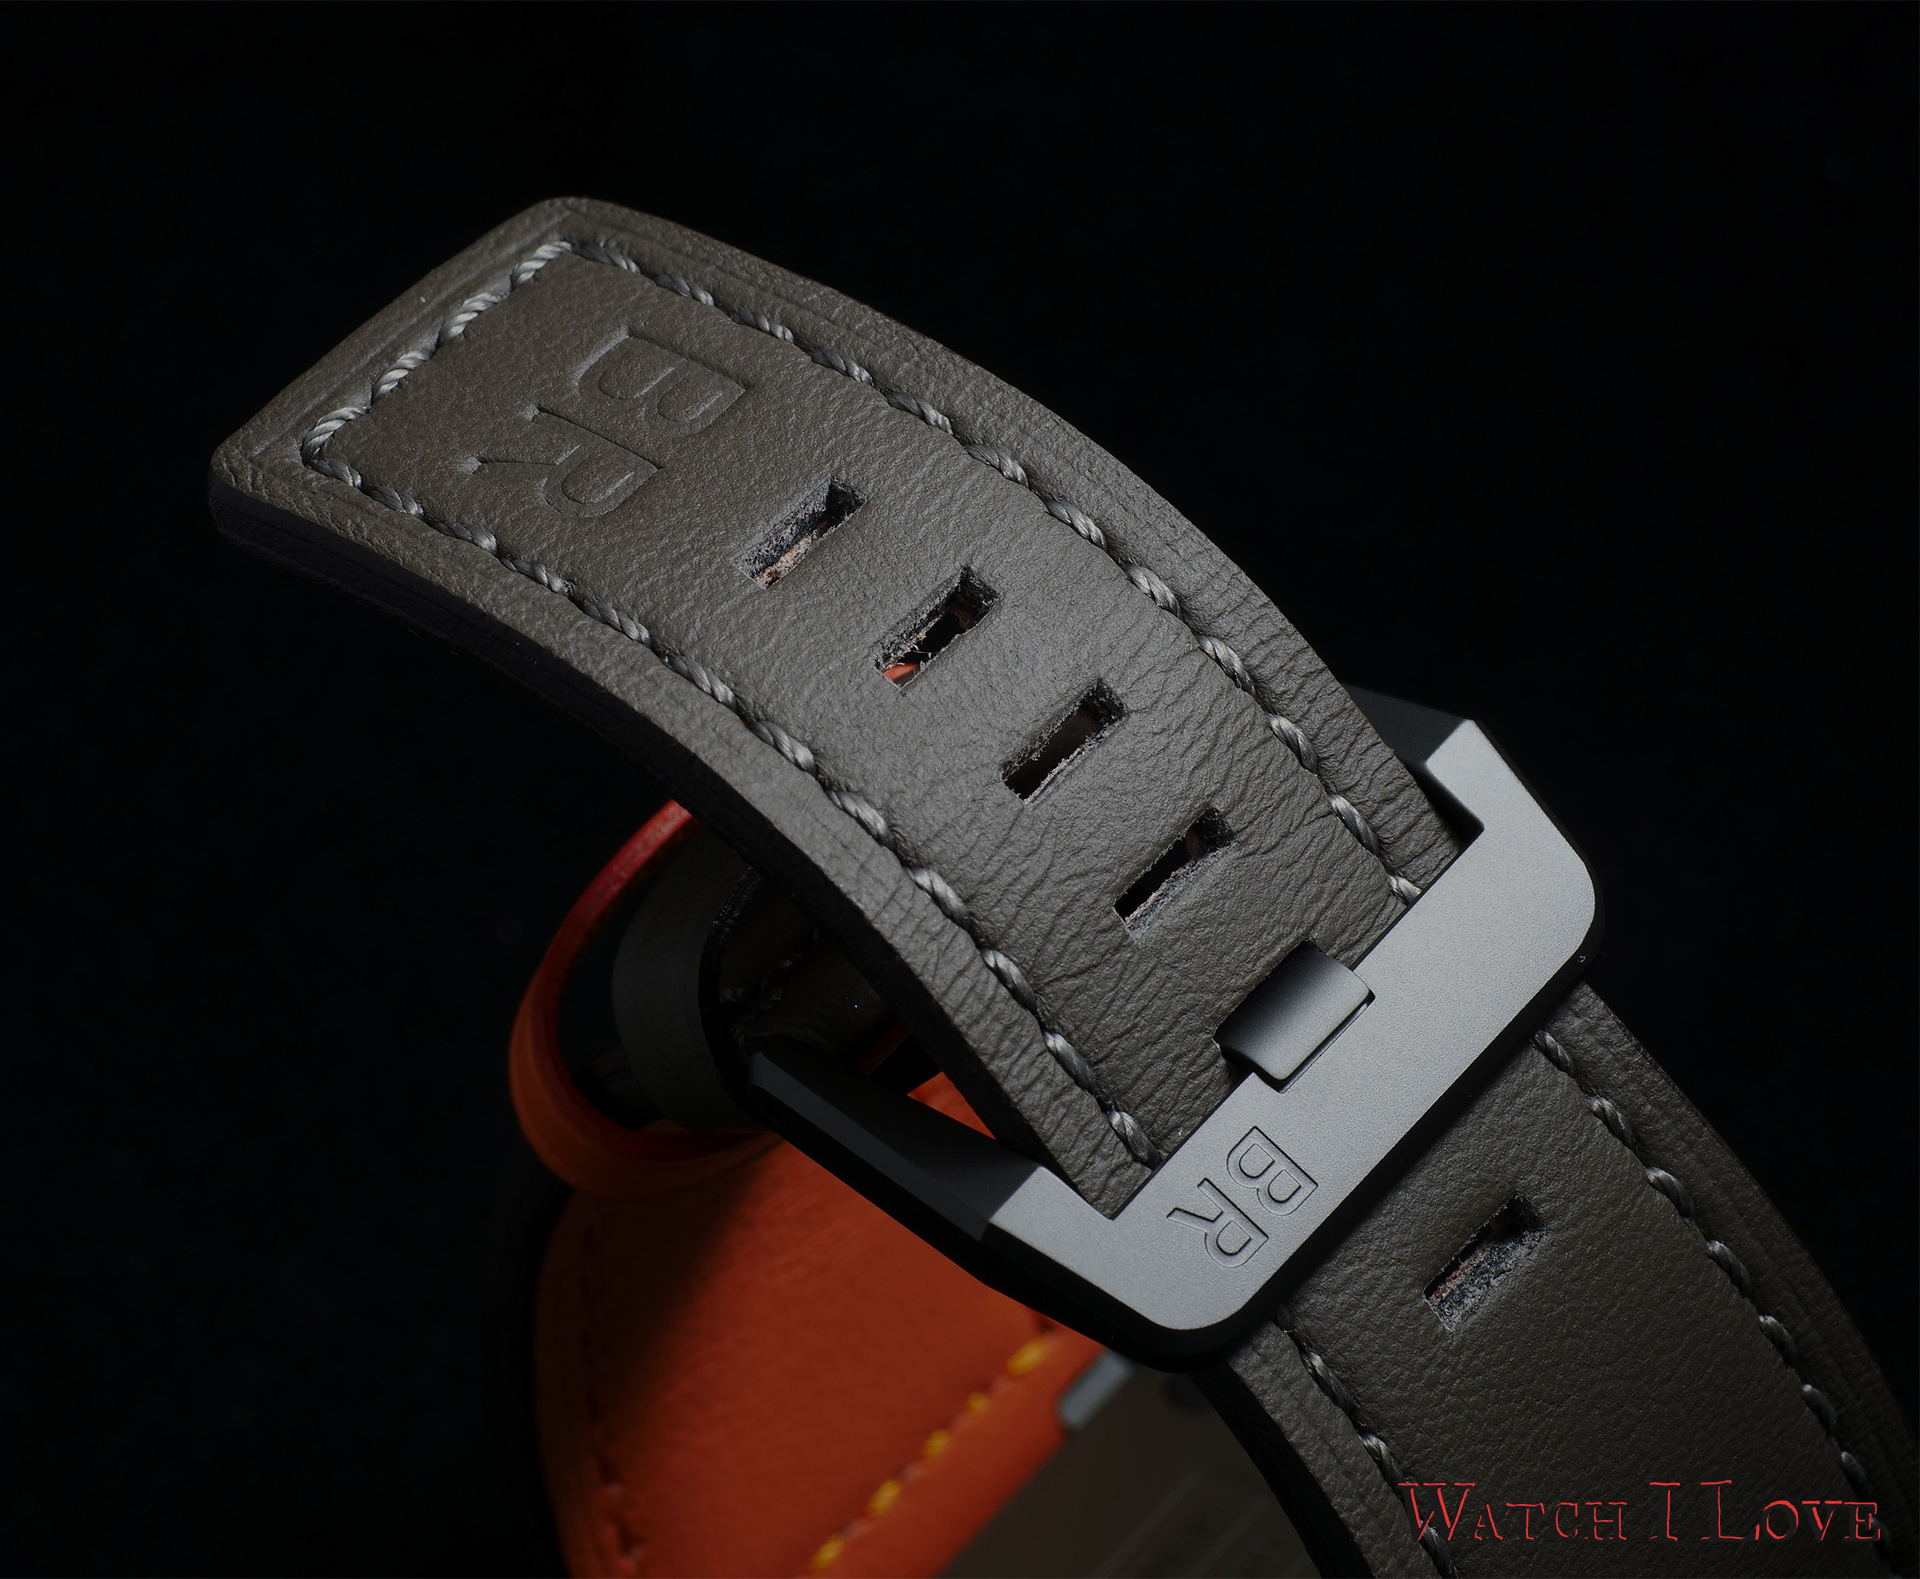 Bell & Ross BR 03-92 MA-1 strap and buckle